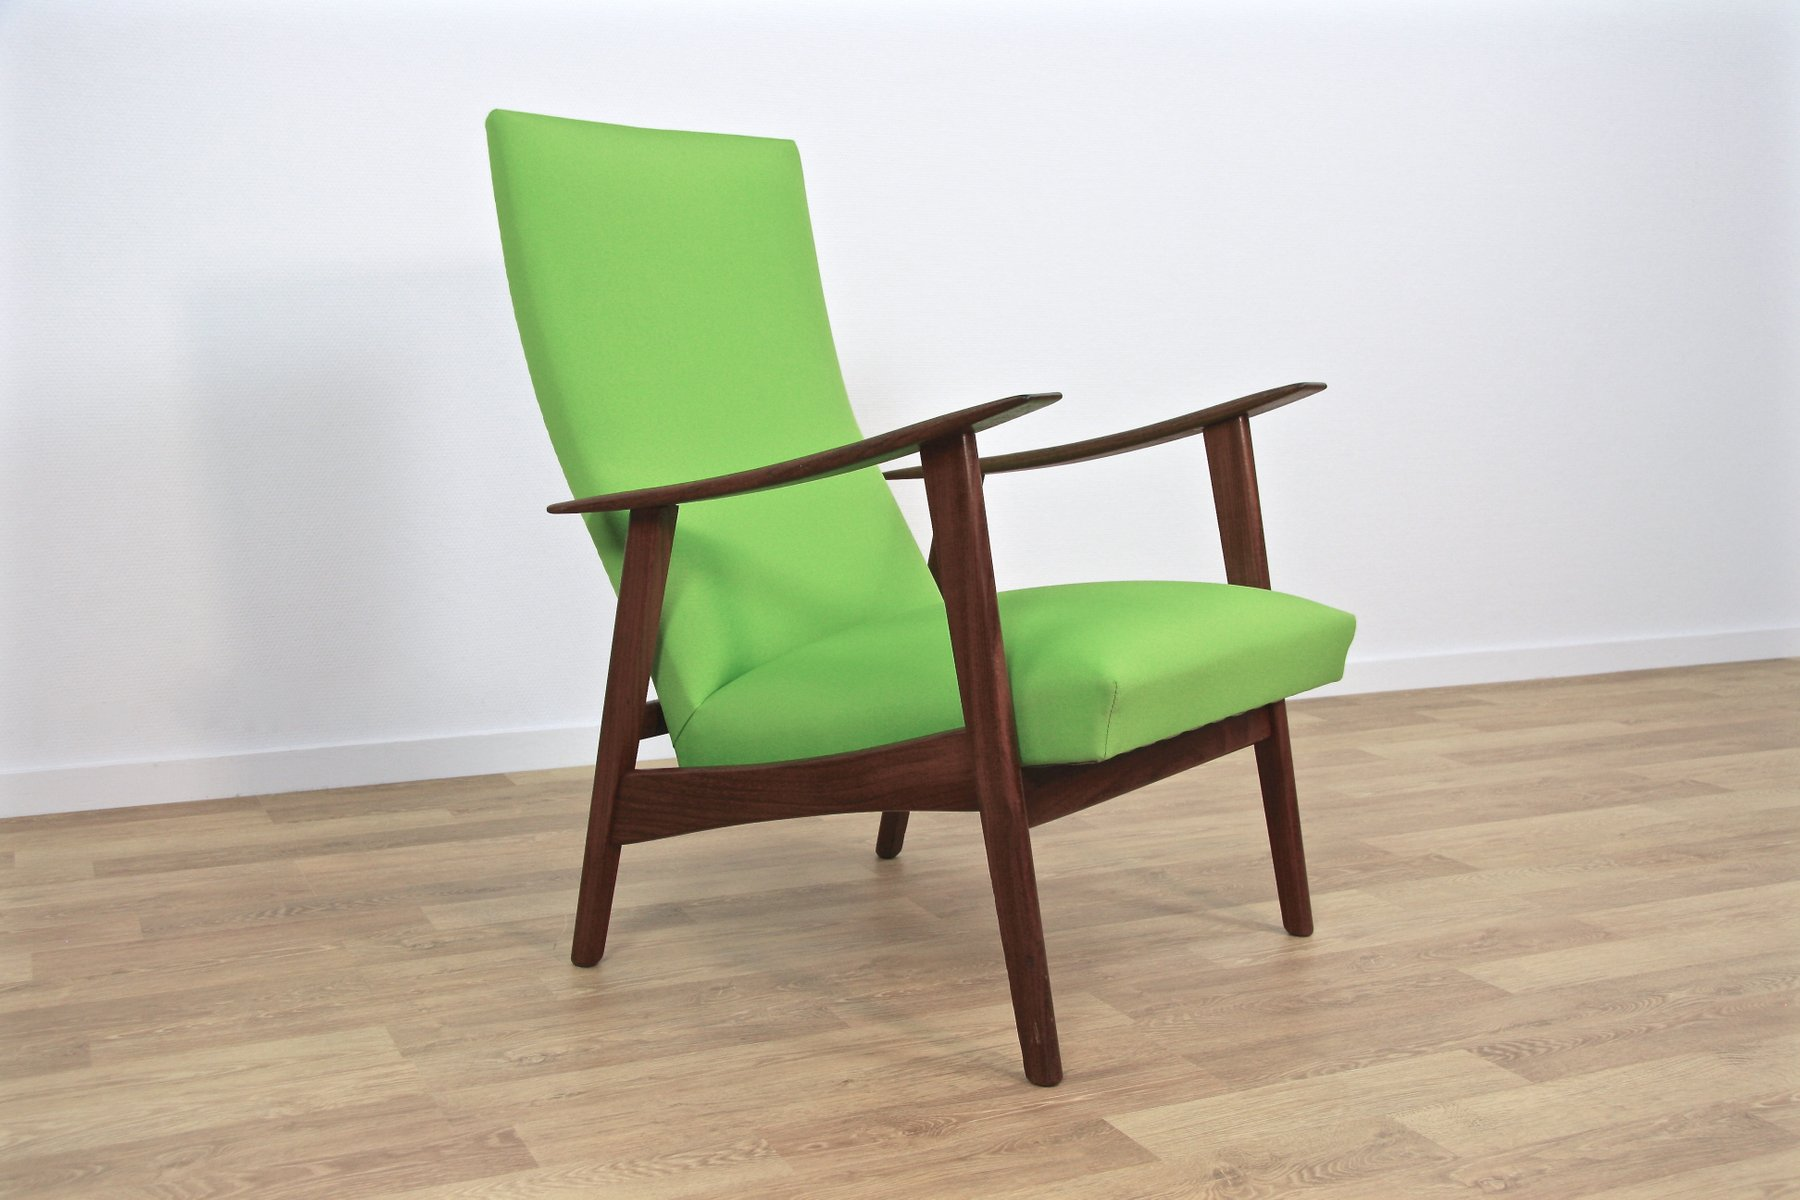 Mid Century Danish Lounge Chair in Teak & Green Fabric 1960s for